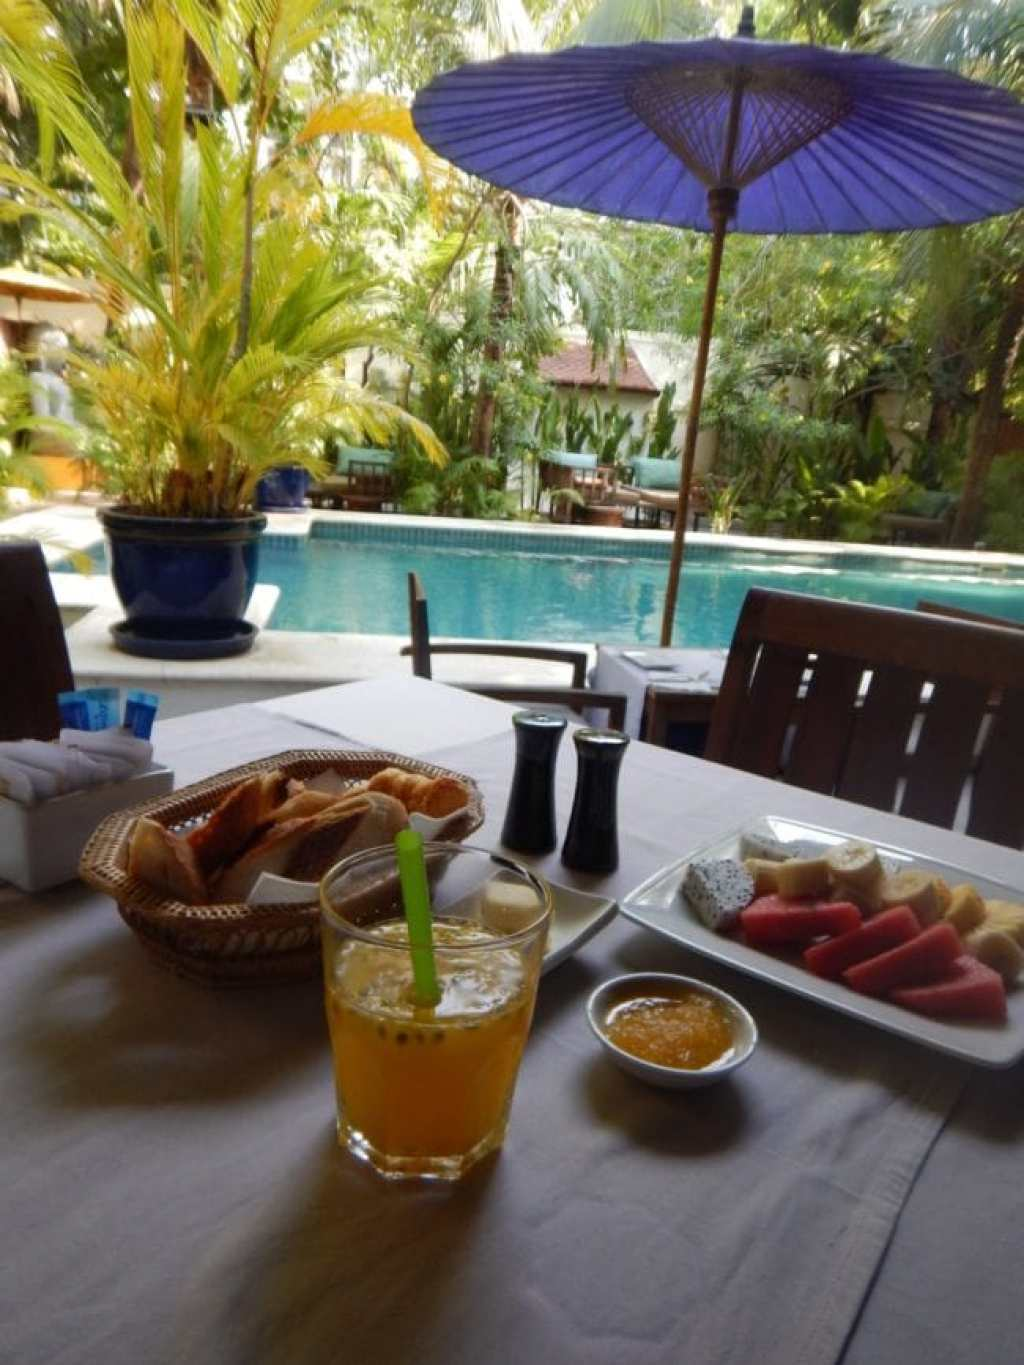 Breakfast at The Pavilion Phnom Penh